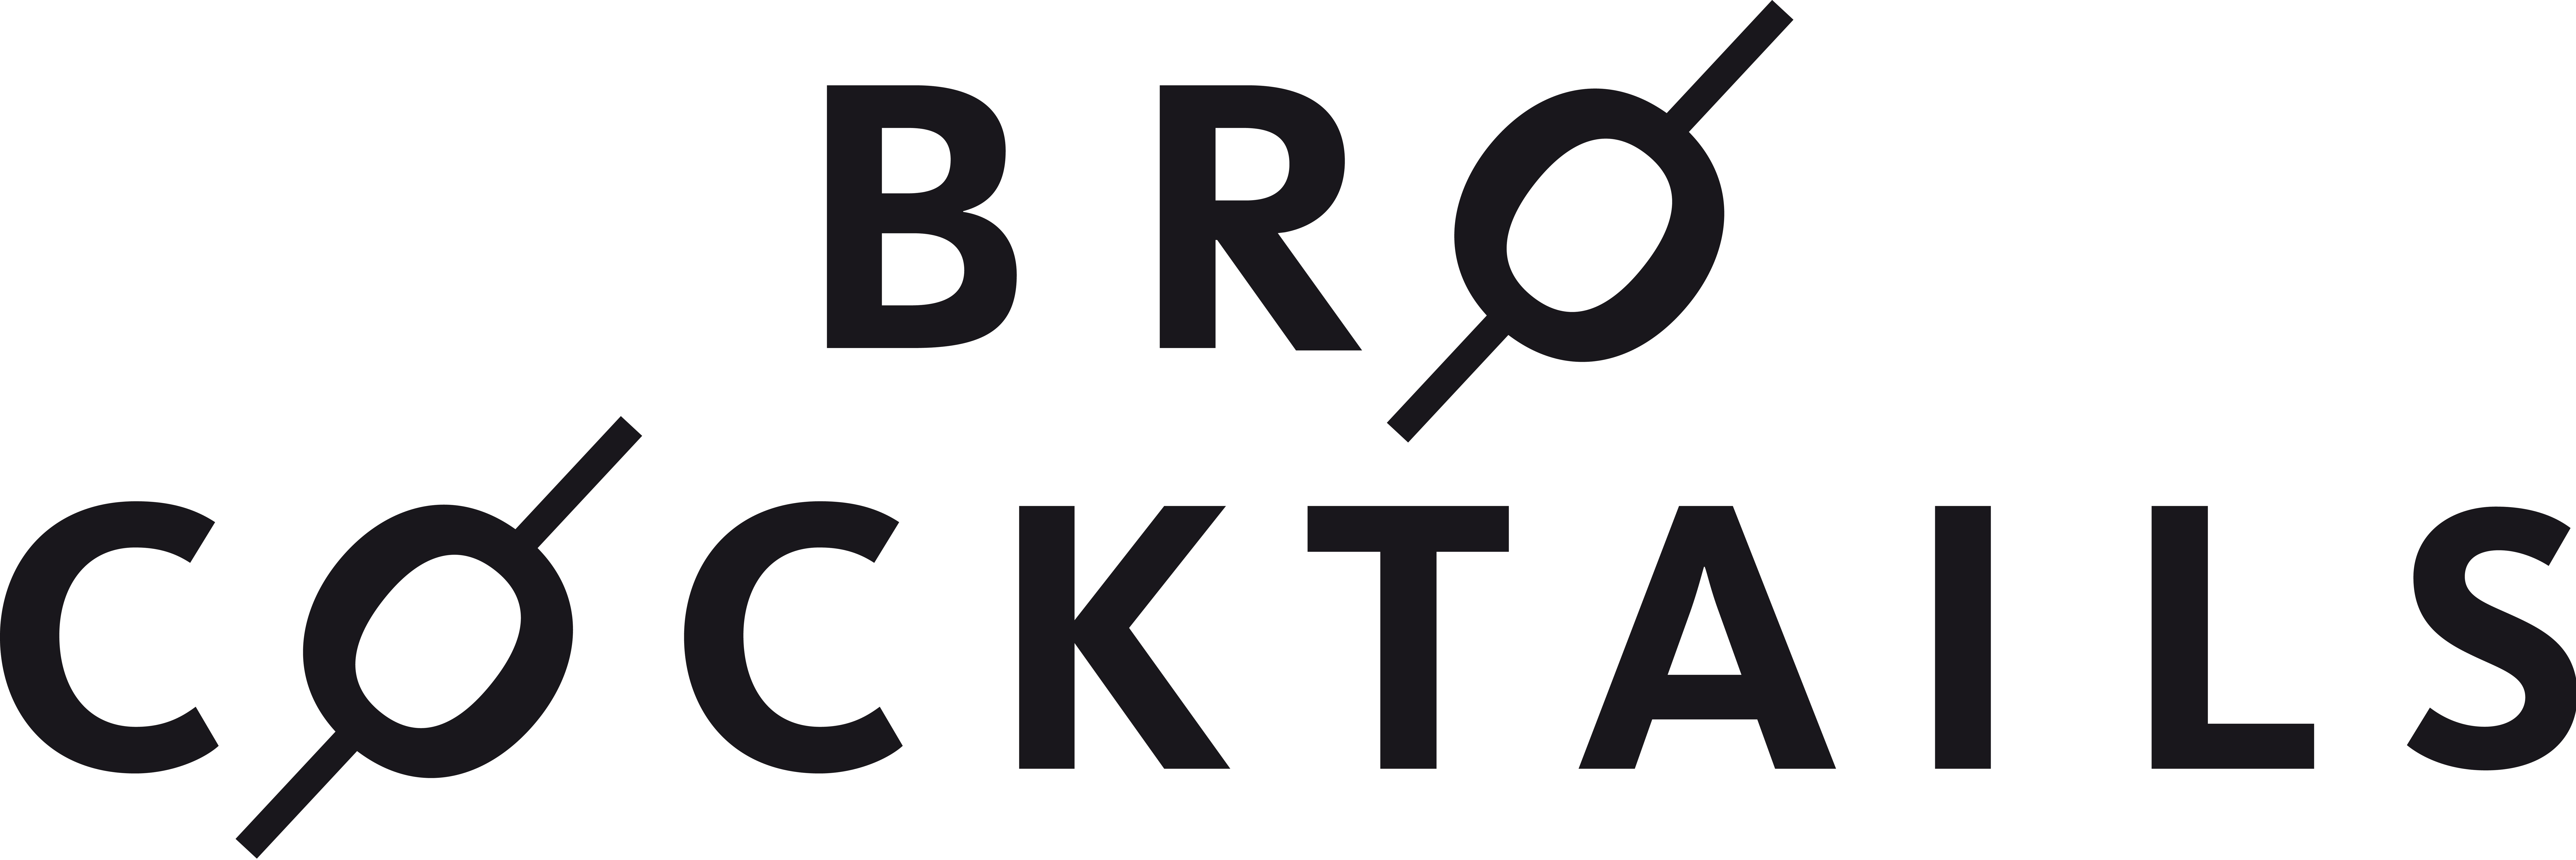 www.brococktails.de